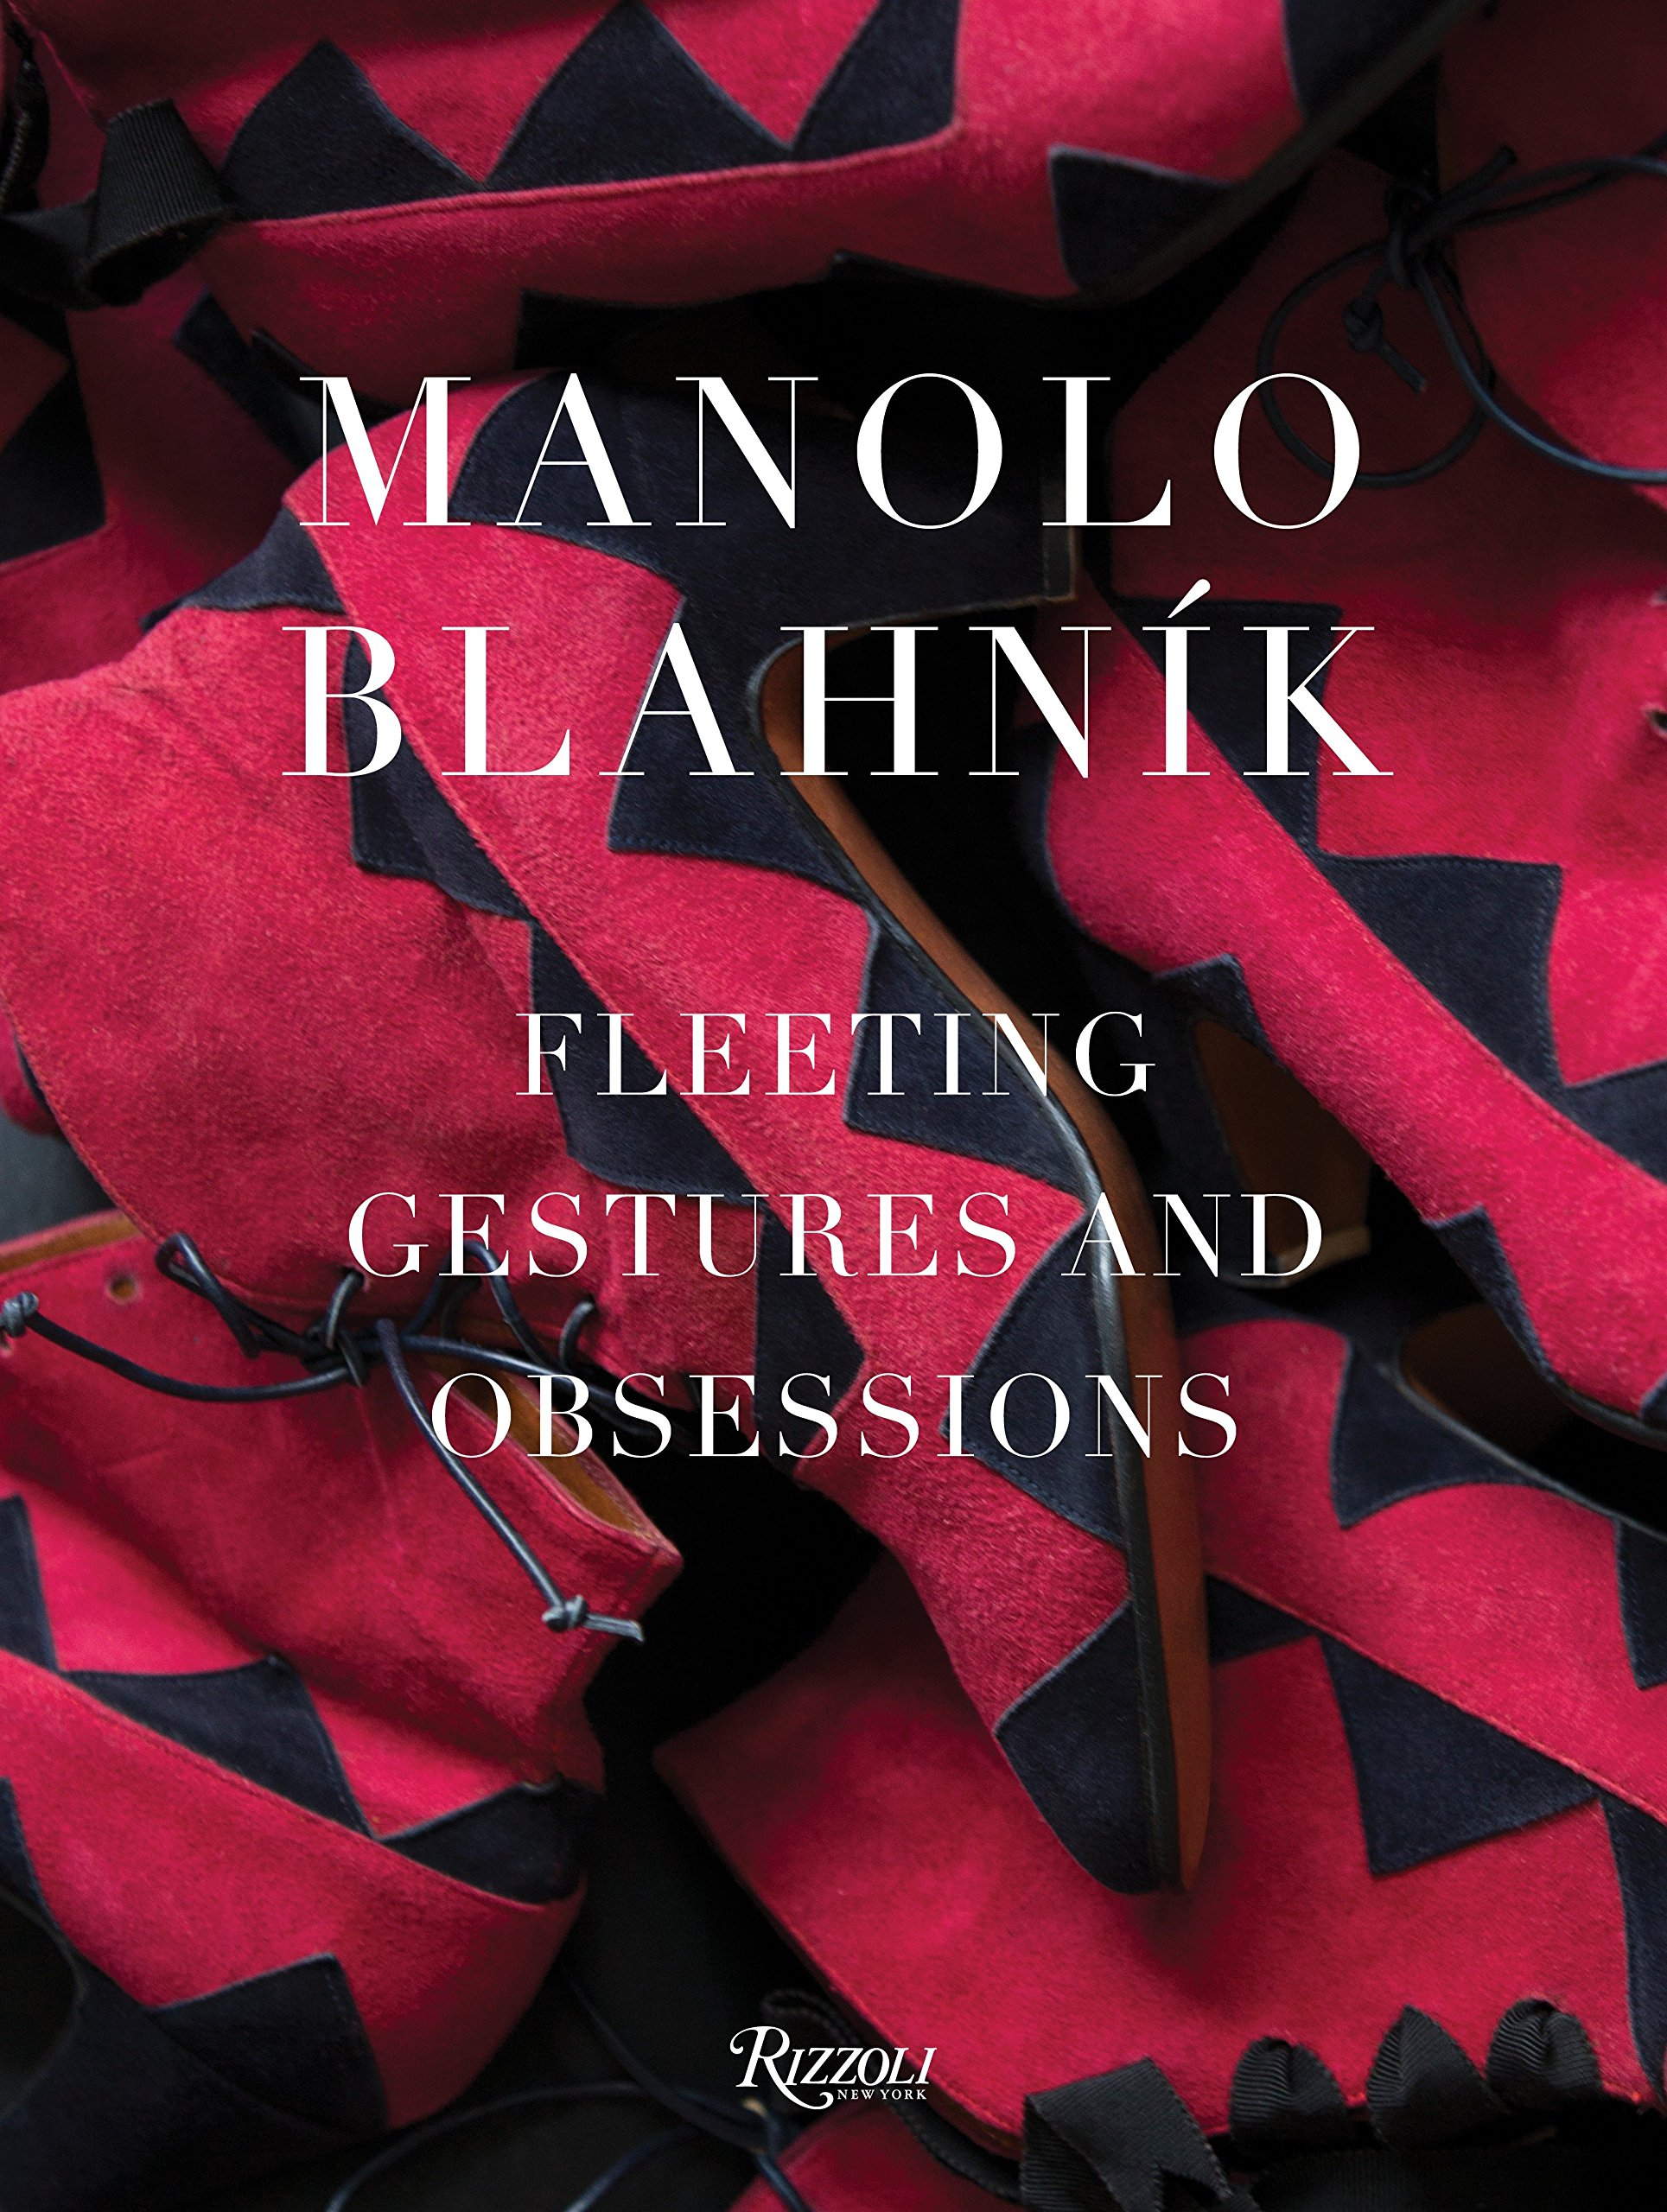 c4c50ab5 Manolo Blahnik Deluxe Slipcased Edition: Fleeting Gestures and Obsessions  Hardcover – 8 Sep 2015